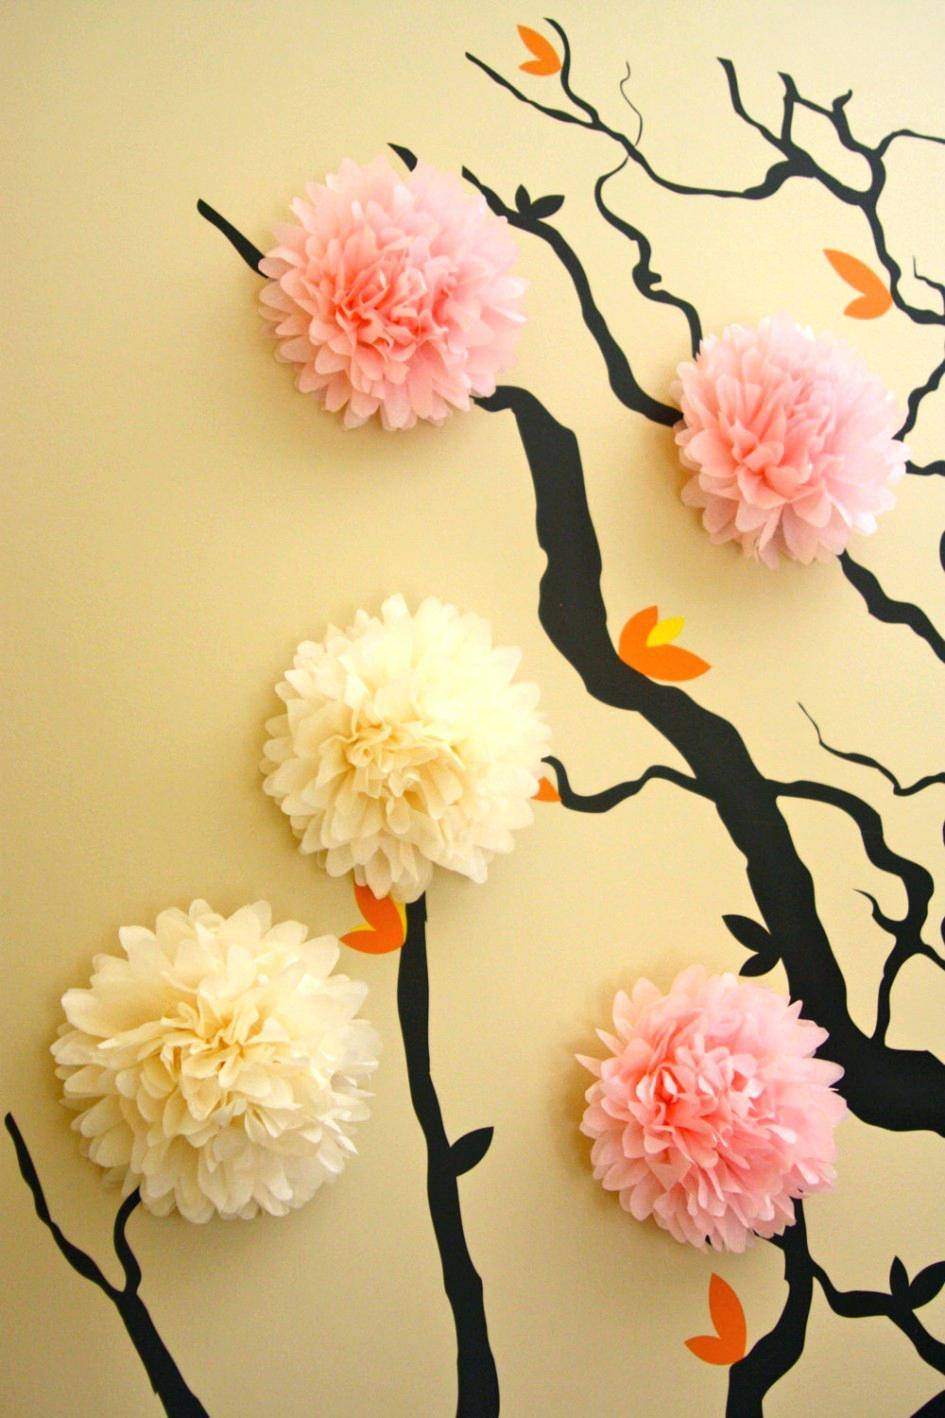 Articles With Red Cherry Blossom Wall Decor Tag: Cherry Blossom In Most Up To Date Red Cherry Blossom Wall Art (View 8 of 30)